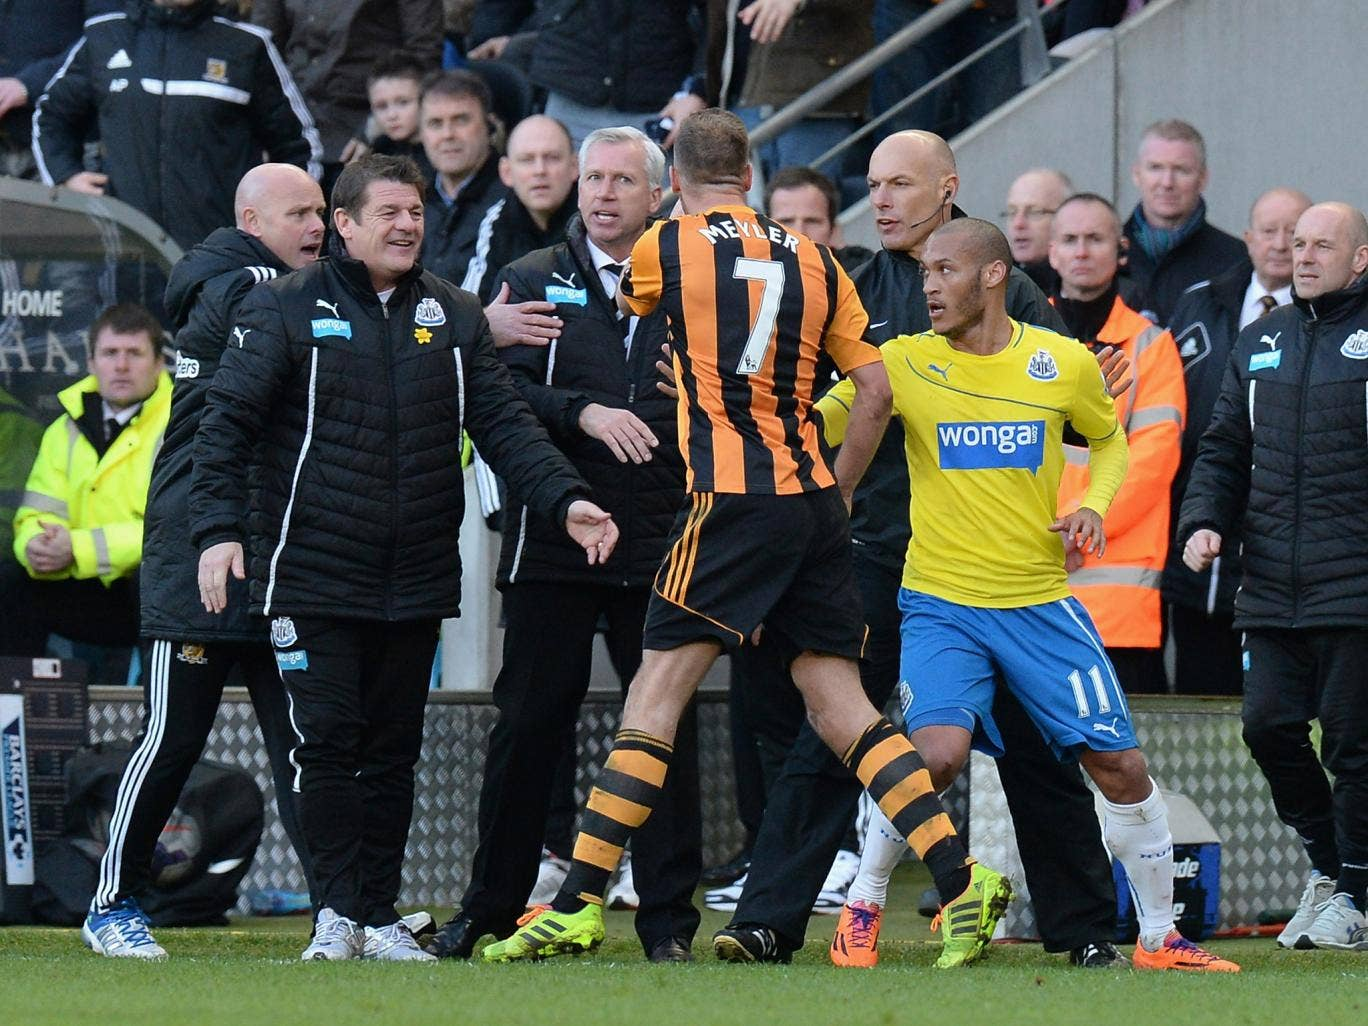 Newcastle manager Alan Pardew was sent to the stands for appearing to headbutt Hull midfielder David Meyler